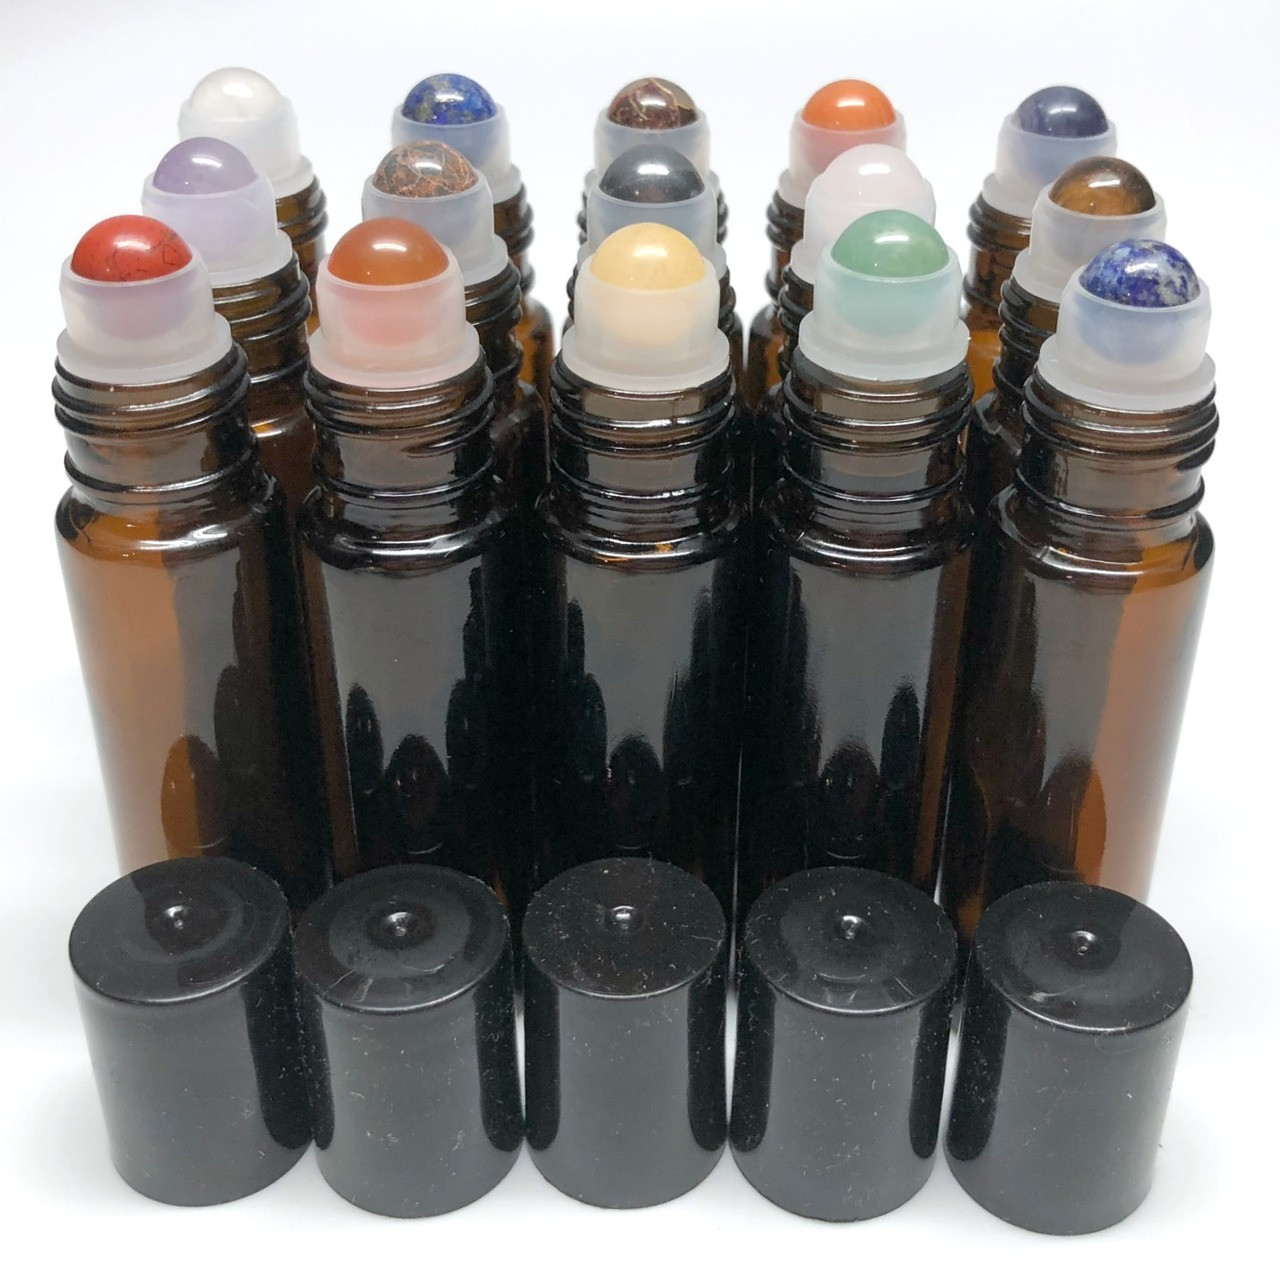 e7337235467 Chakra Gemstone Rollerball Inserts with Essential Oil Amber Roller ...